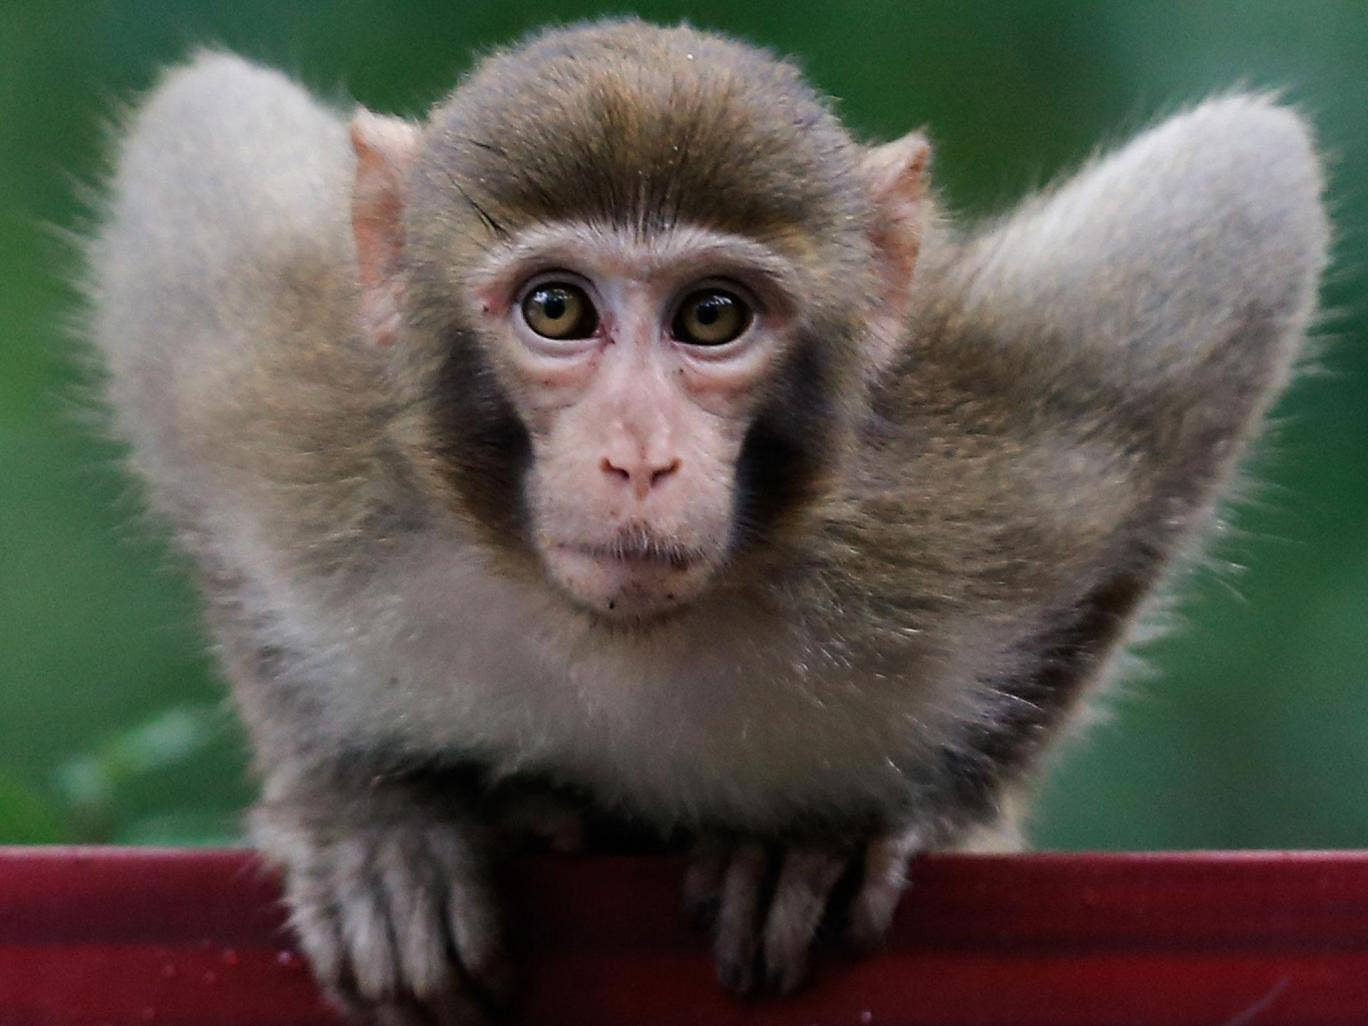 ZHANGJIAJIE, CHINA - SEPTEMBER 01: A macaque monkey plays in the Zhangjiajie national park on September 1, 2013 in Zhangjiajie, China. Zhangjiajie National Forest park is a popular tourist destination in the Hunan province, home to striking sandstone and